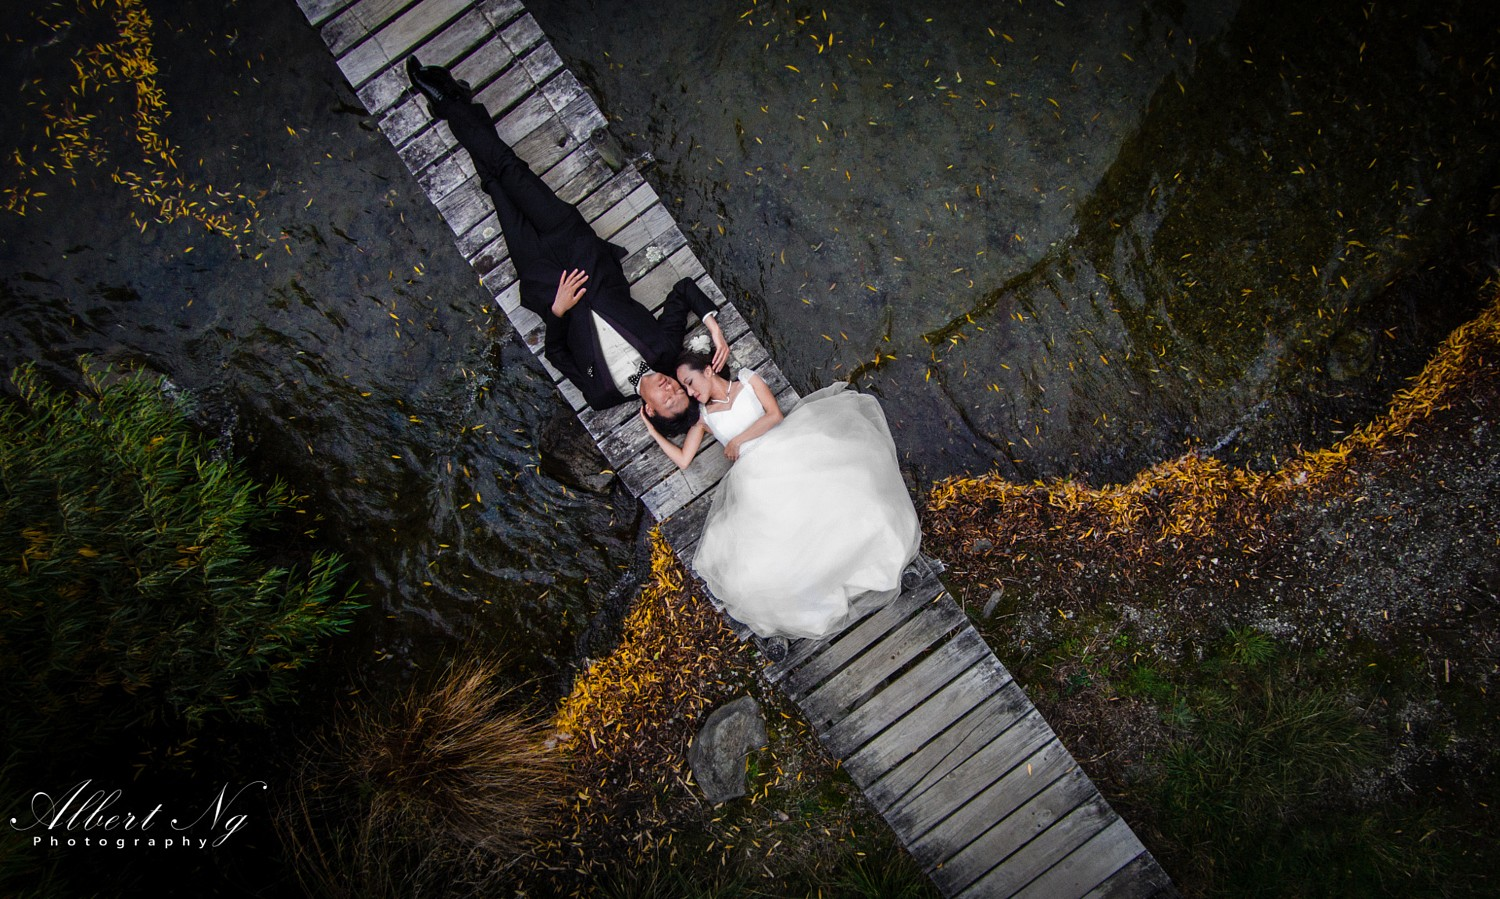 500px Blog » » 7 Fun & Creative Wedding and Engagement Photo Ideas